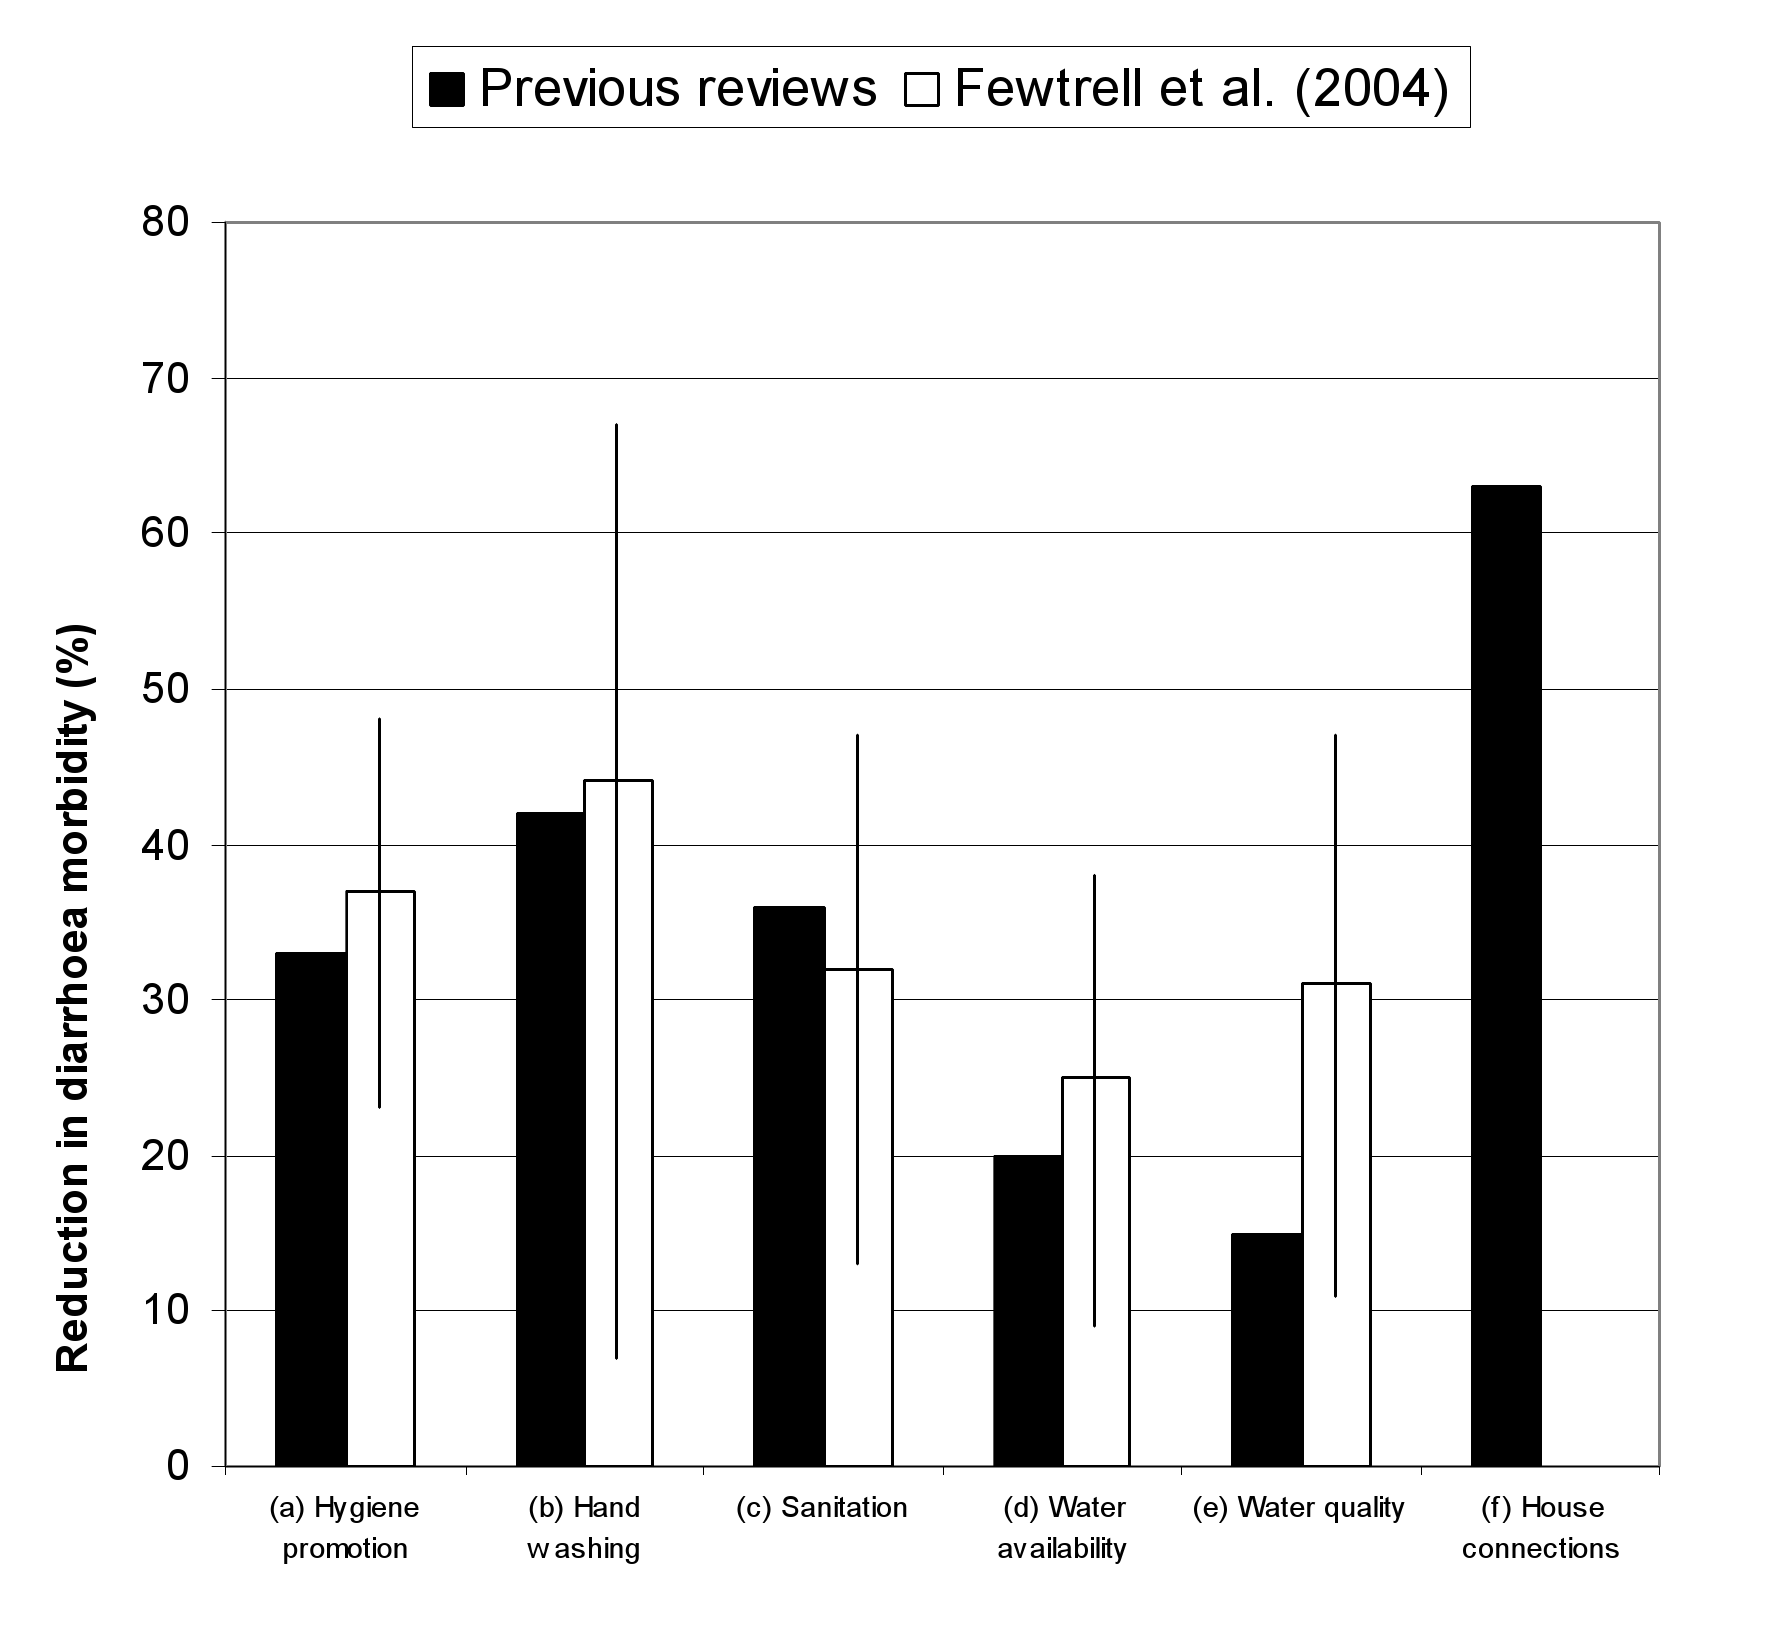 Results of reviews of the effect on diarrhoea of HSW interventions.